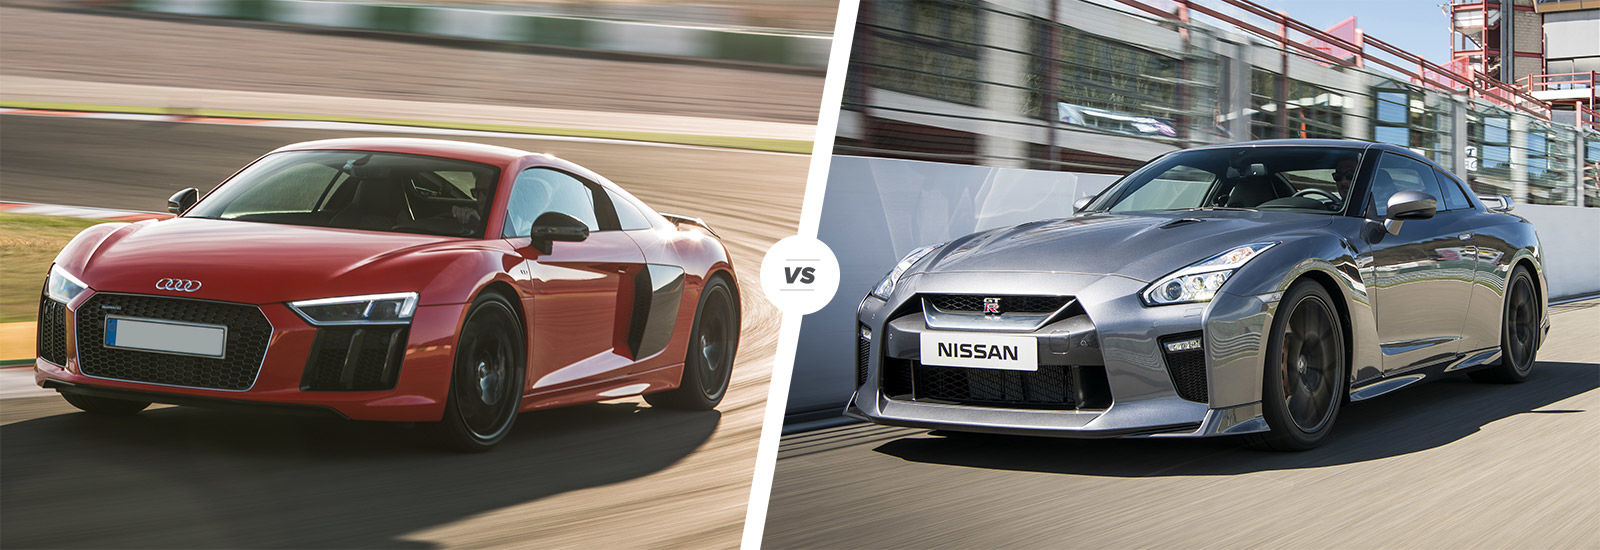 Audi Vs Nissan Gt R Supercar Comparison Carwow